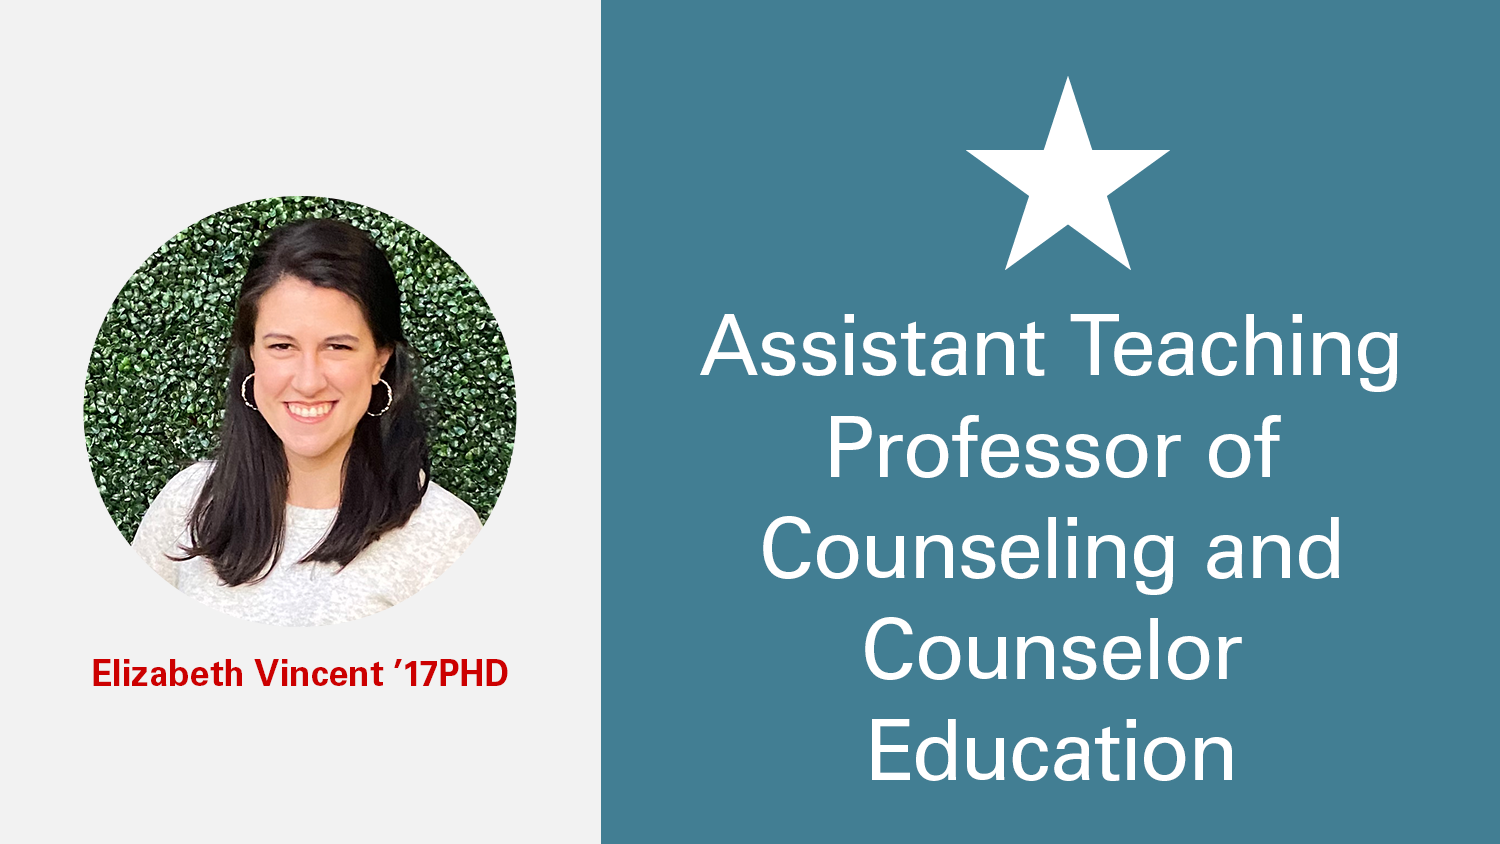 Assistant Teaching Professor of Counseling and Counselor Education Elizabeth Vincent, Ph.D.